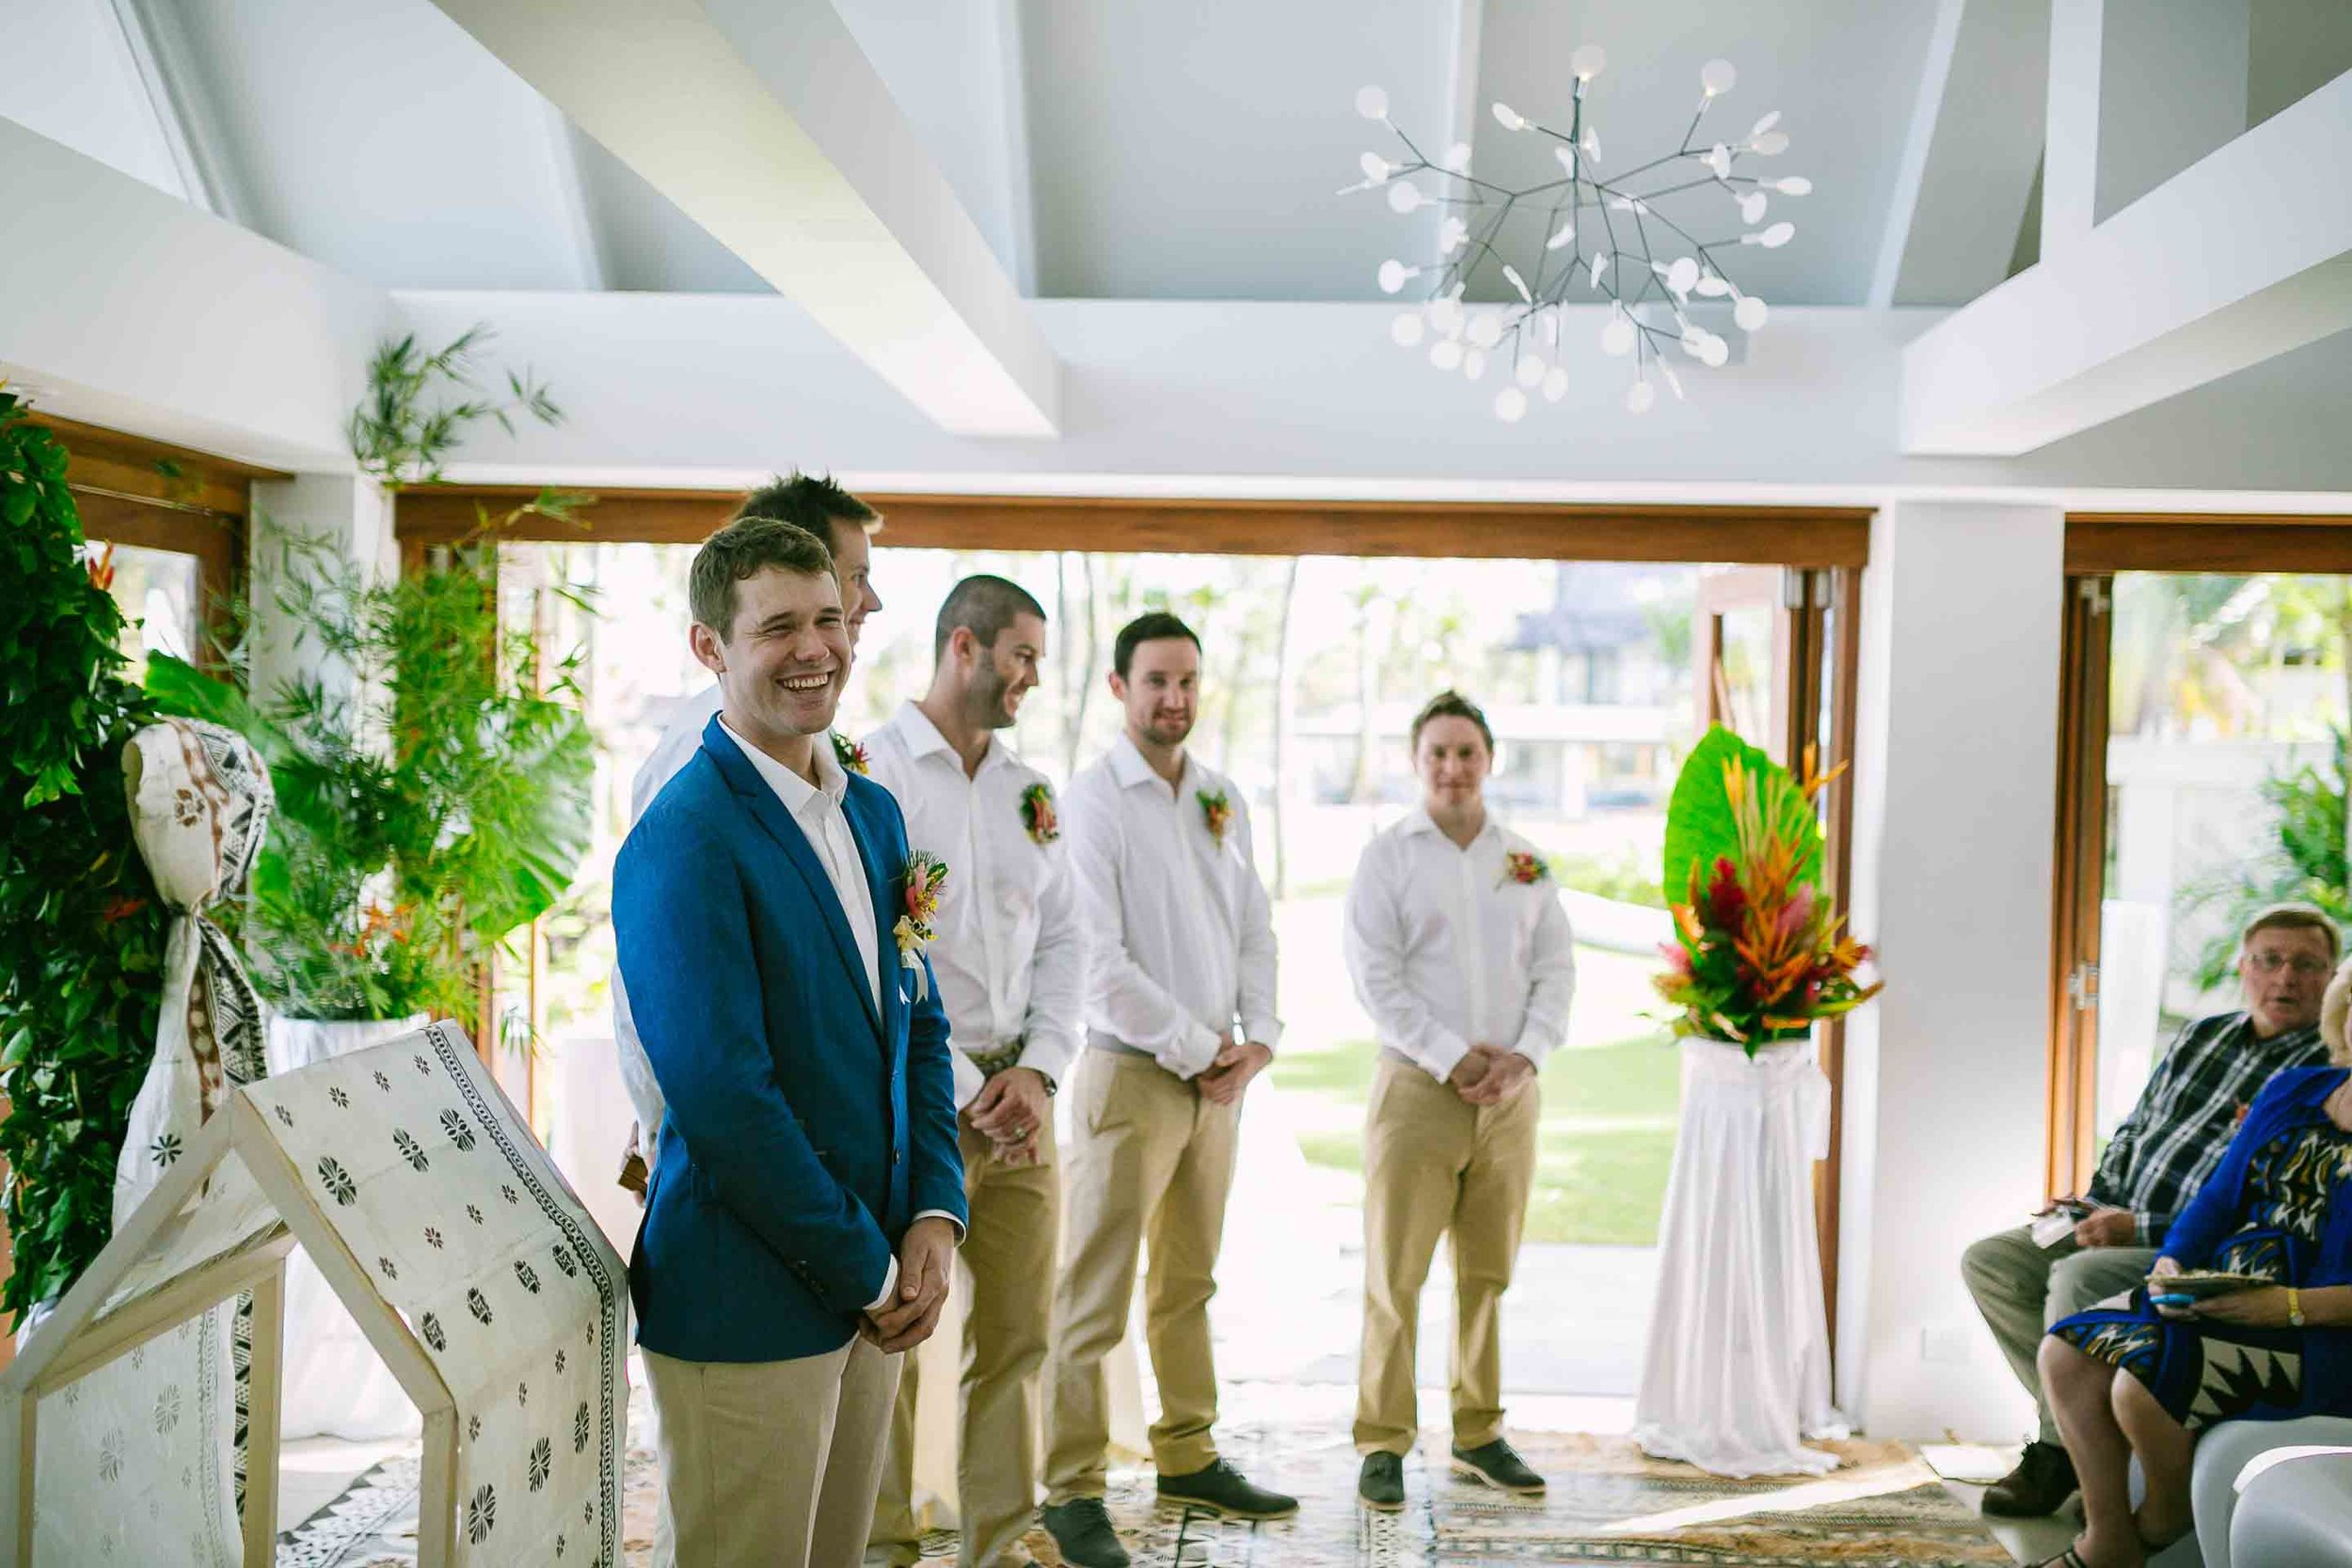 the groom and groomsman waiting at the end of the alter for his bride